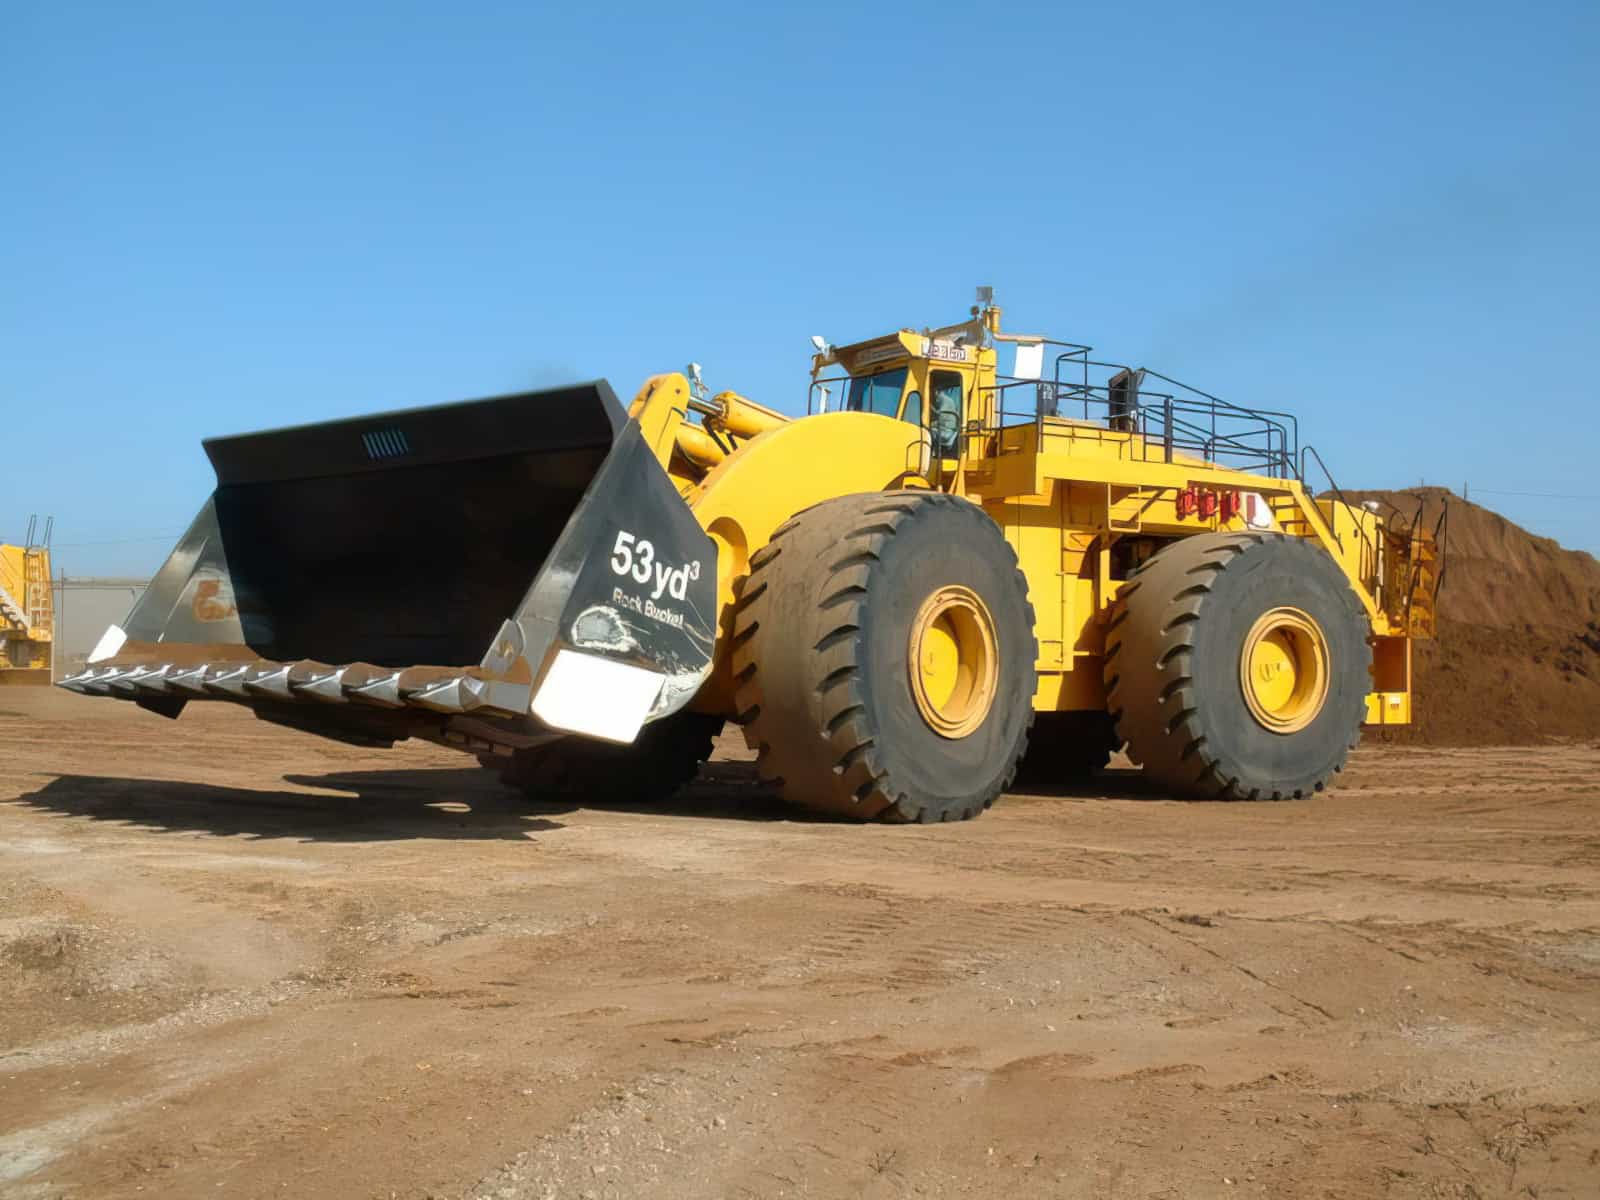 LeTourneau L2350 Front End Loader enlarged